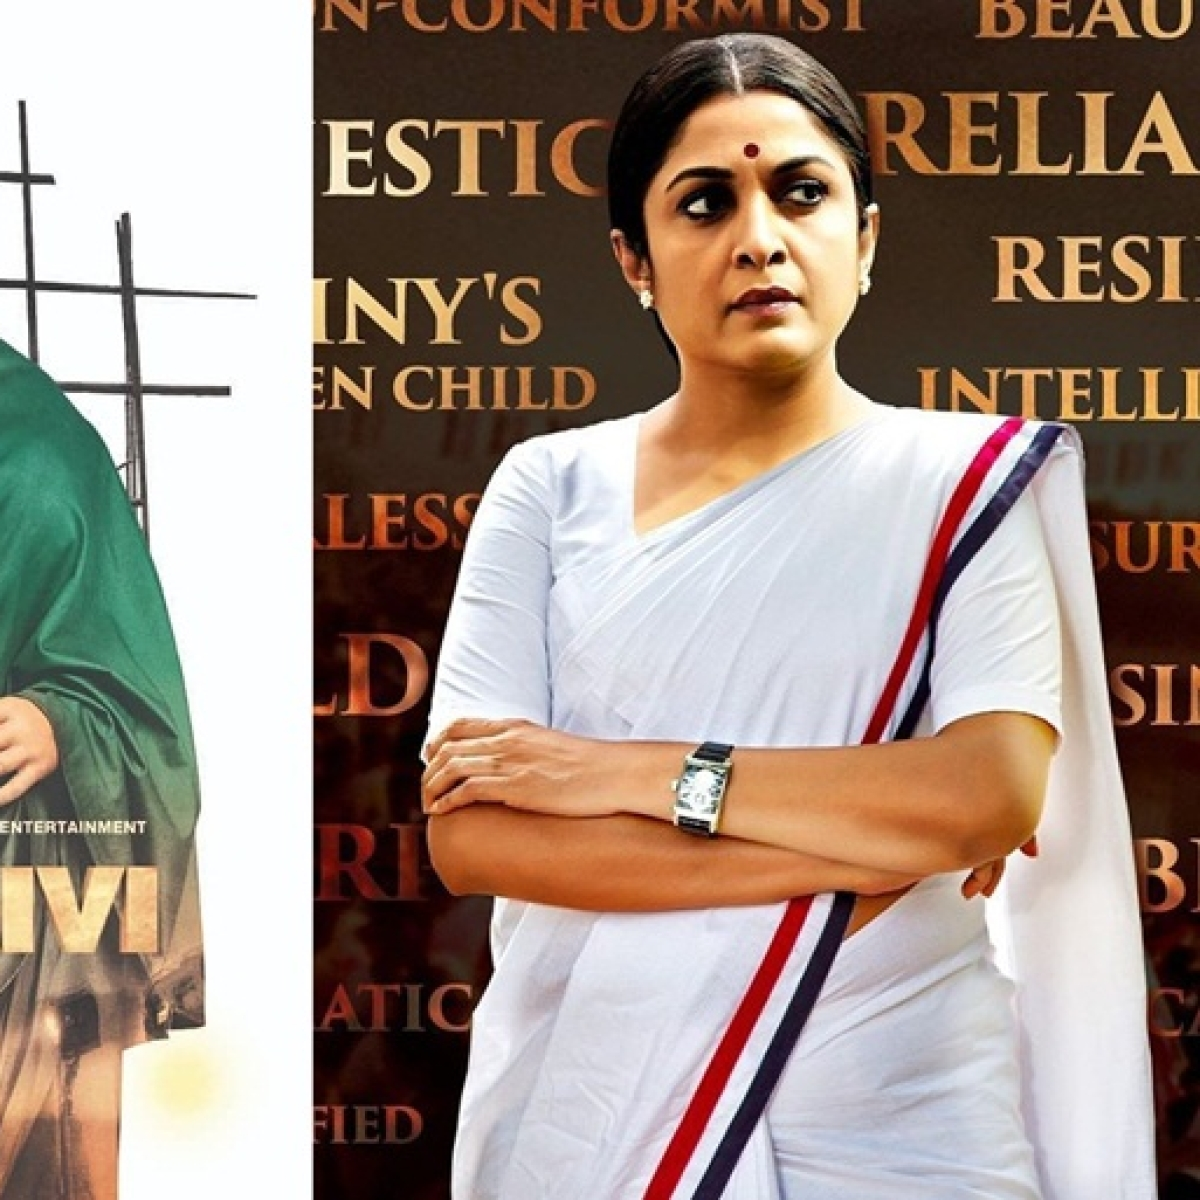 Kangana Ranaut or Ramya Krishnan – who looks more convincing as Jayalalithaa onscreen?